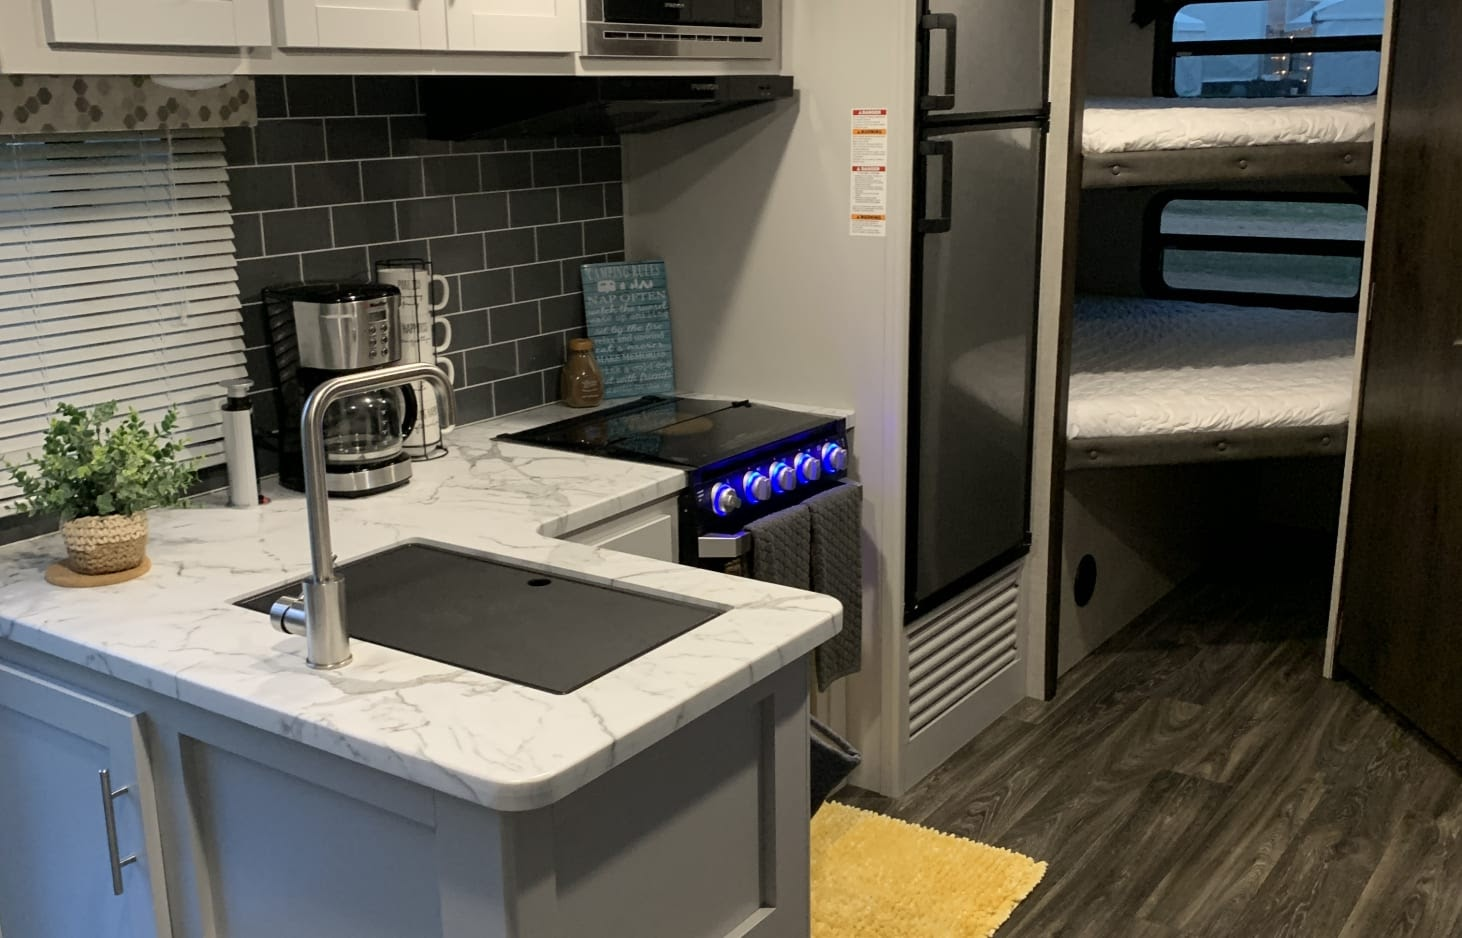 glamping in tx - 30-foot trailer from rvShare.